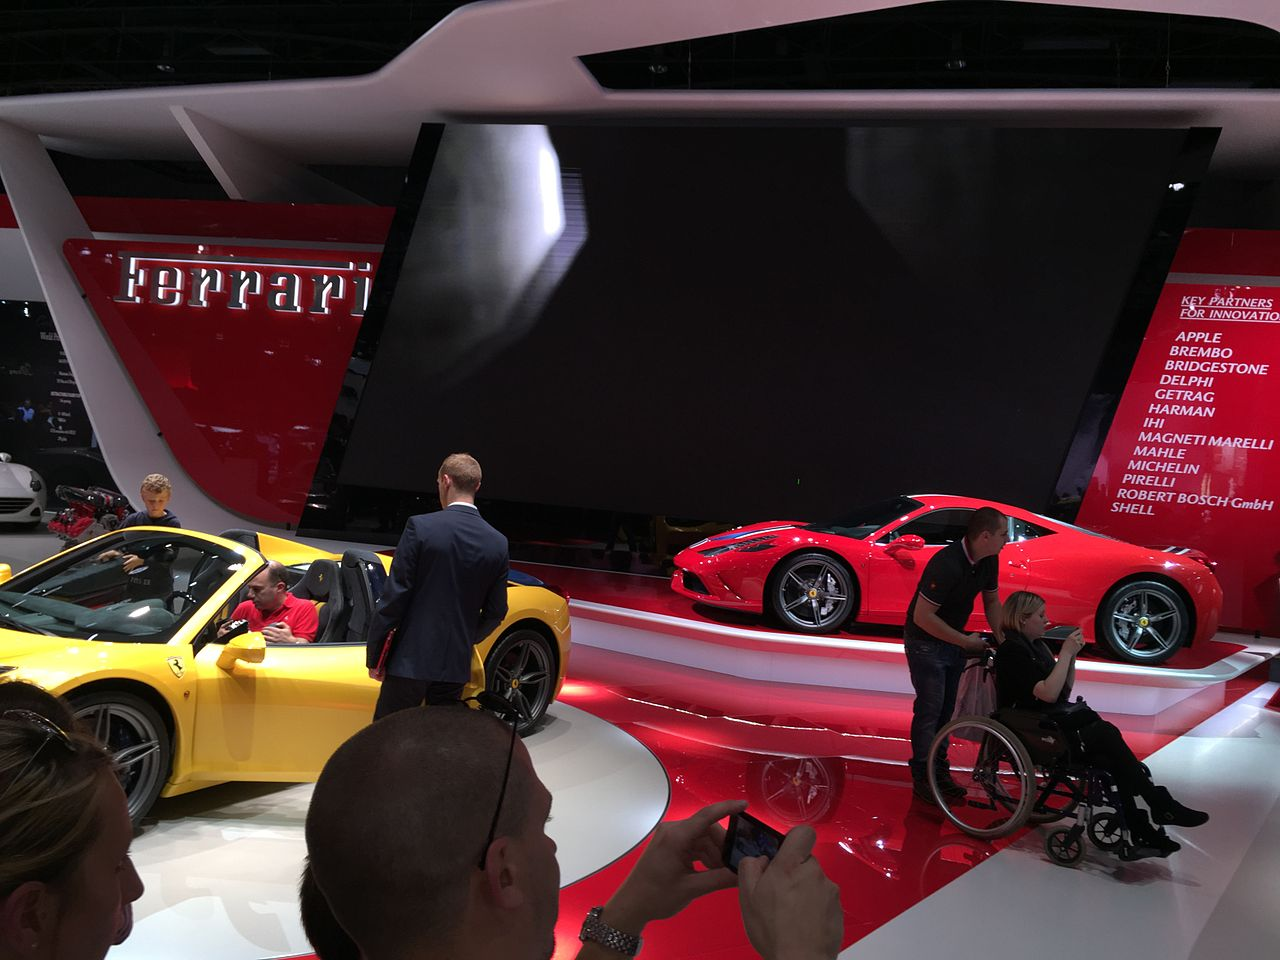 file ferrari mondial de l automobile de paris 2014 2 jpg wikimedia commons. Black Bedroom Furniture Sets. Home Design Ideas